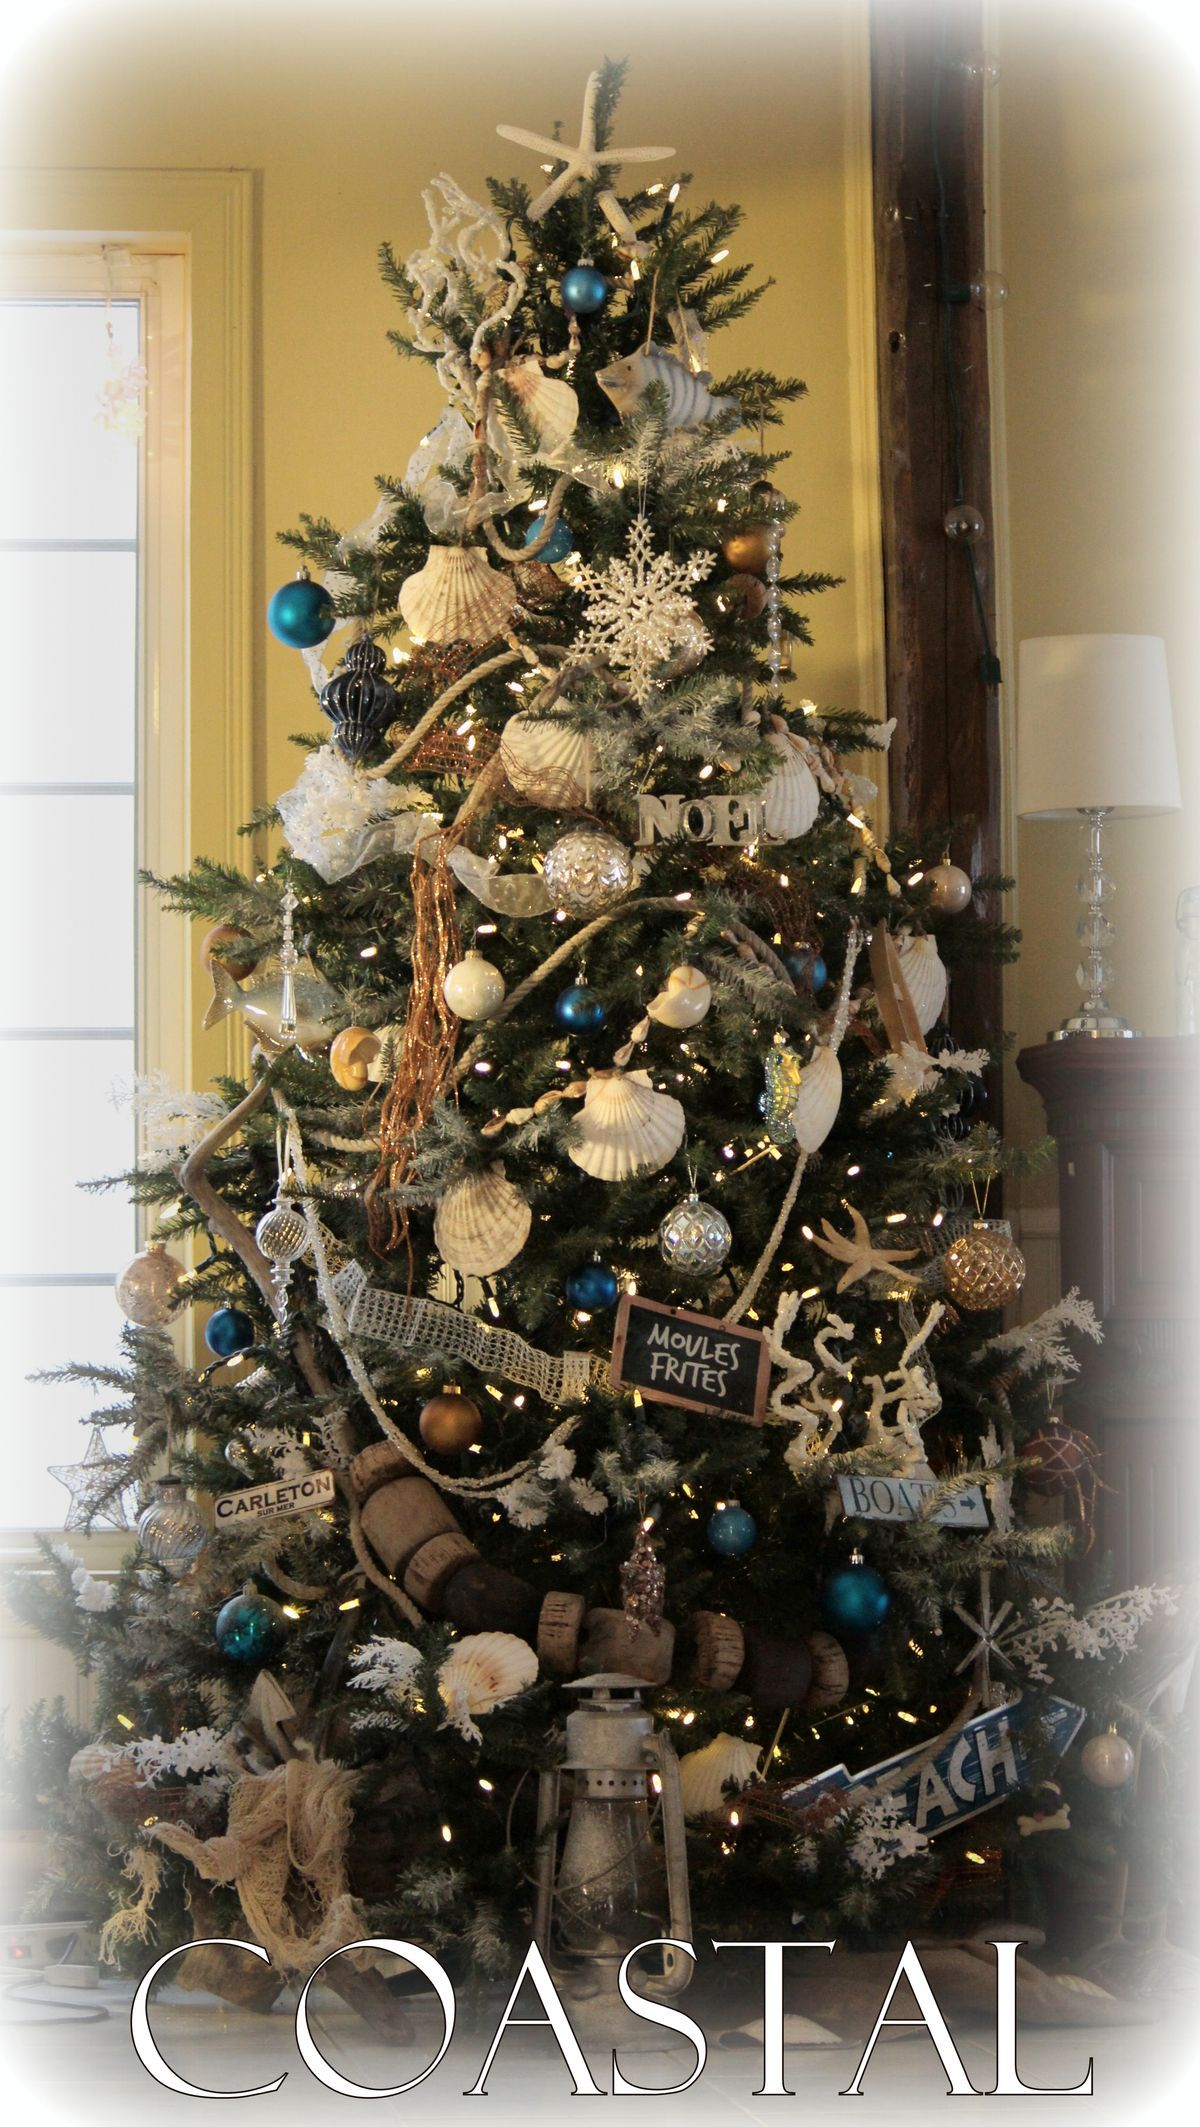 Christmas tree with shells, rope, anchor, beach theme signs, buoy float  garland